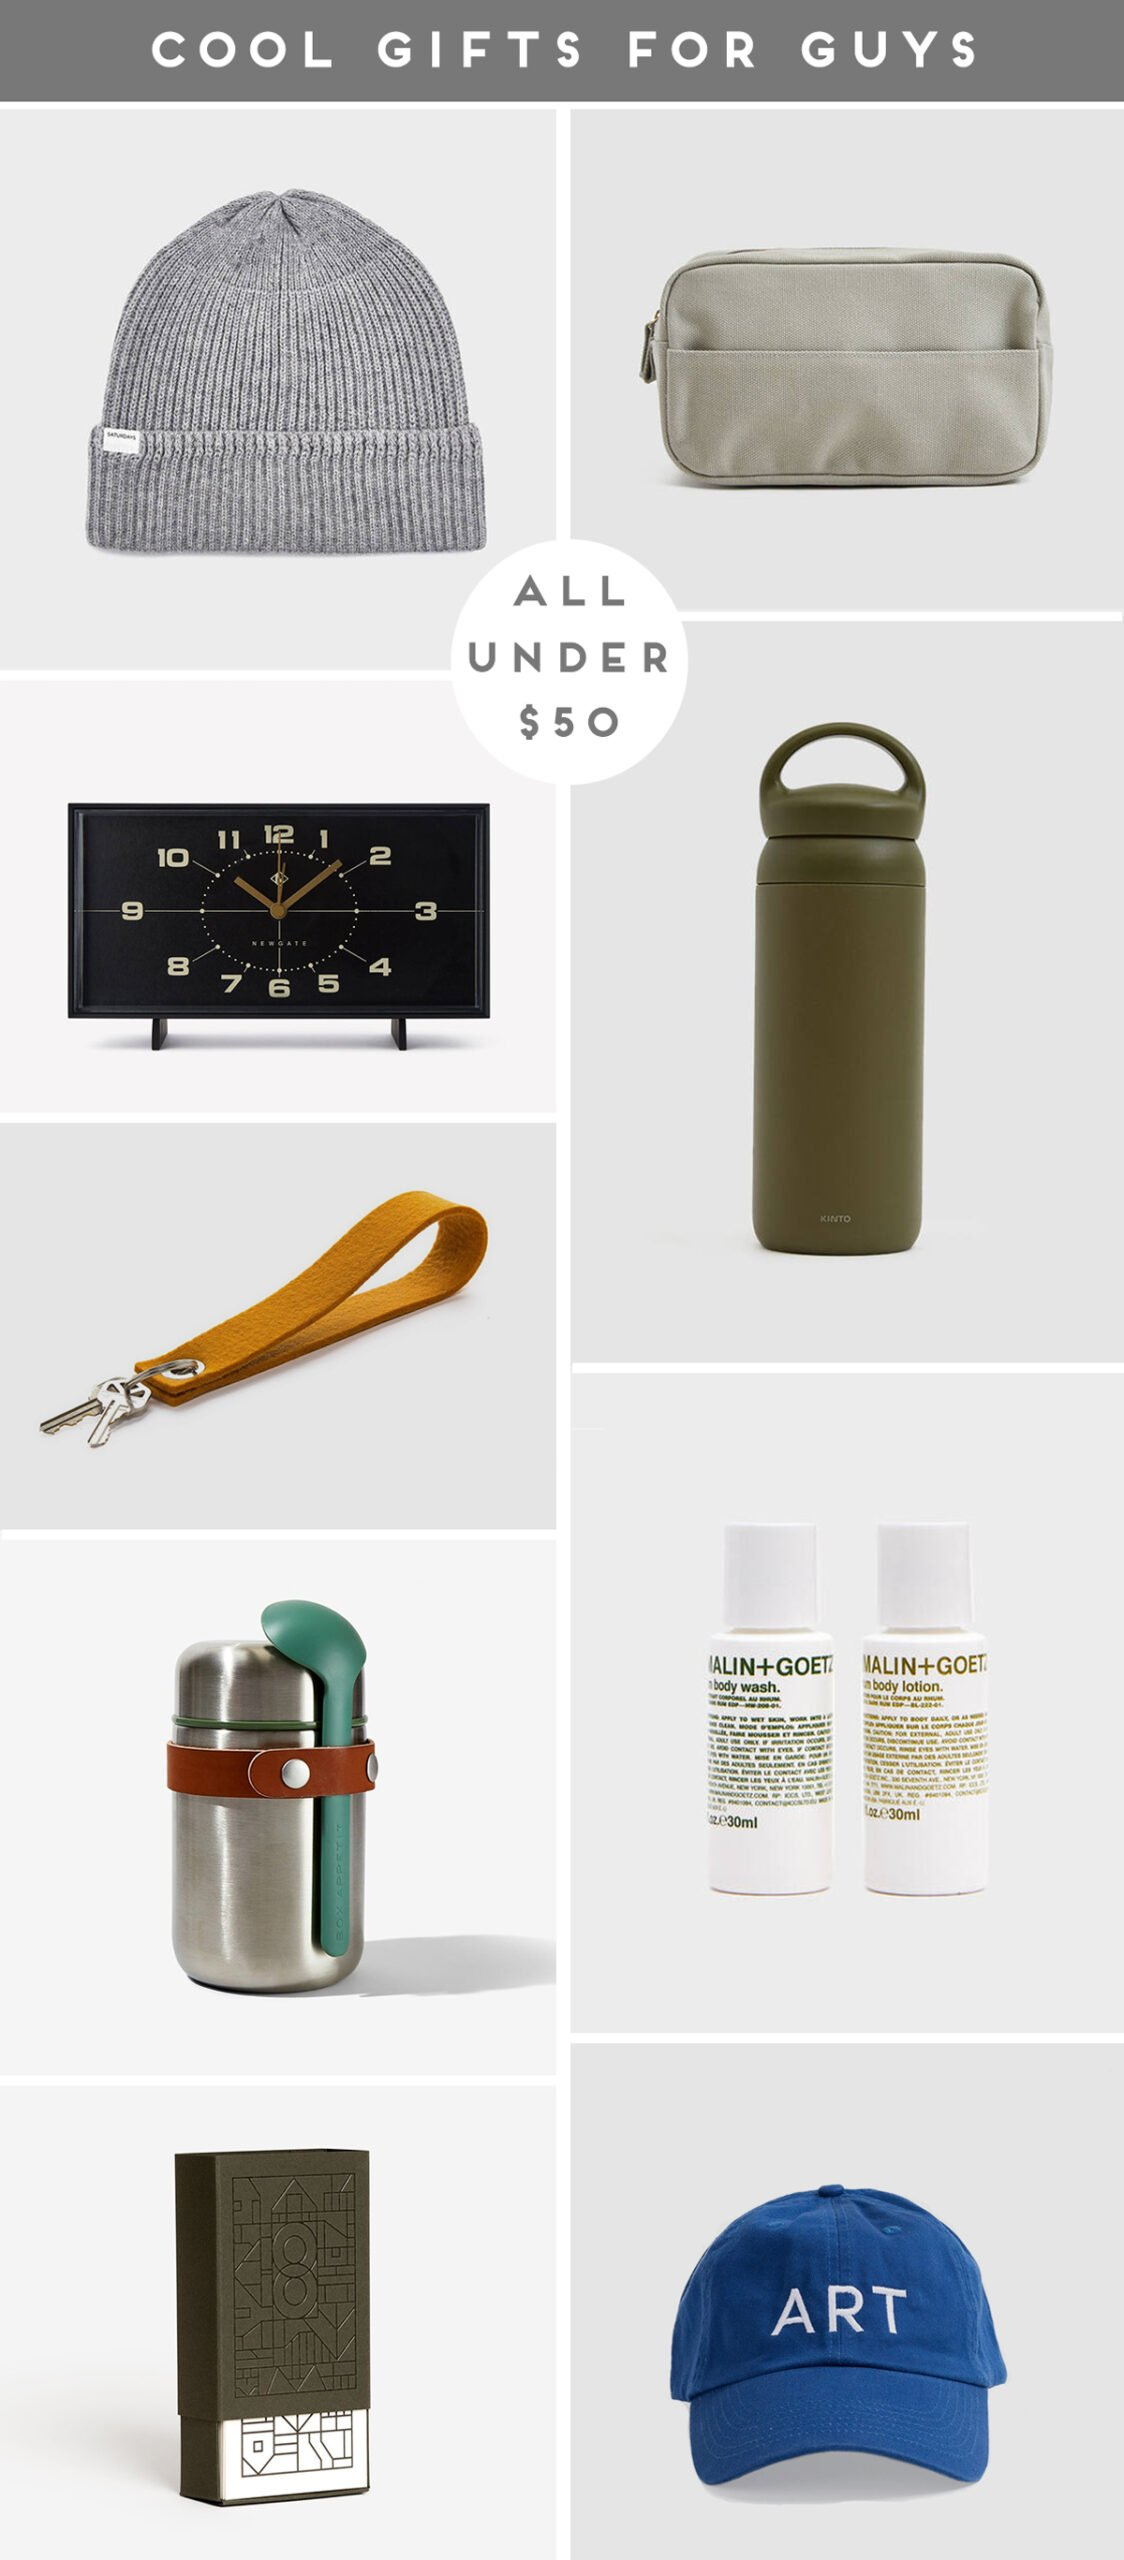 A roundup of cool gifts for guys (all under $50)